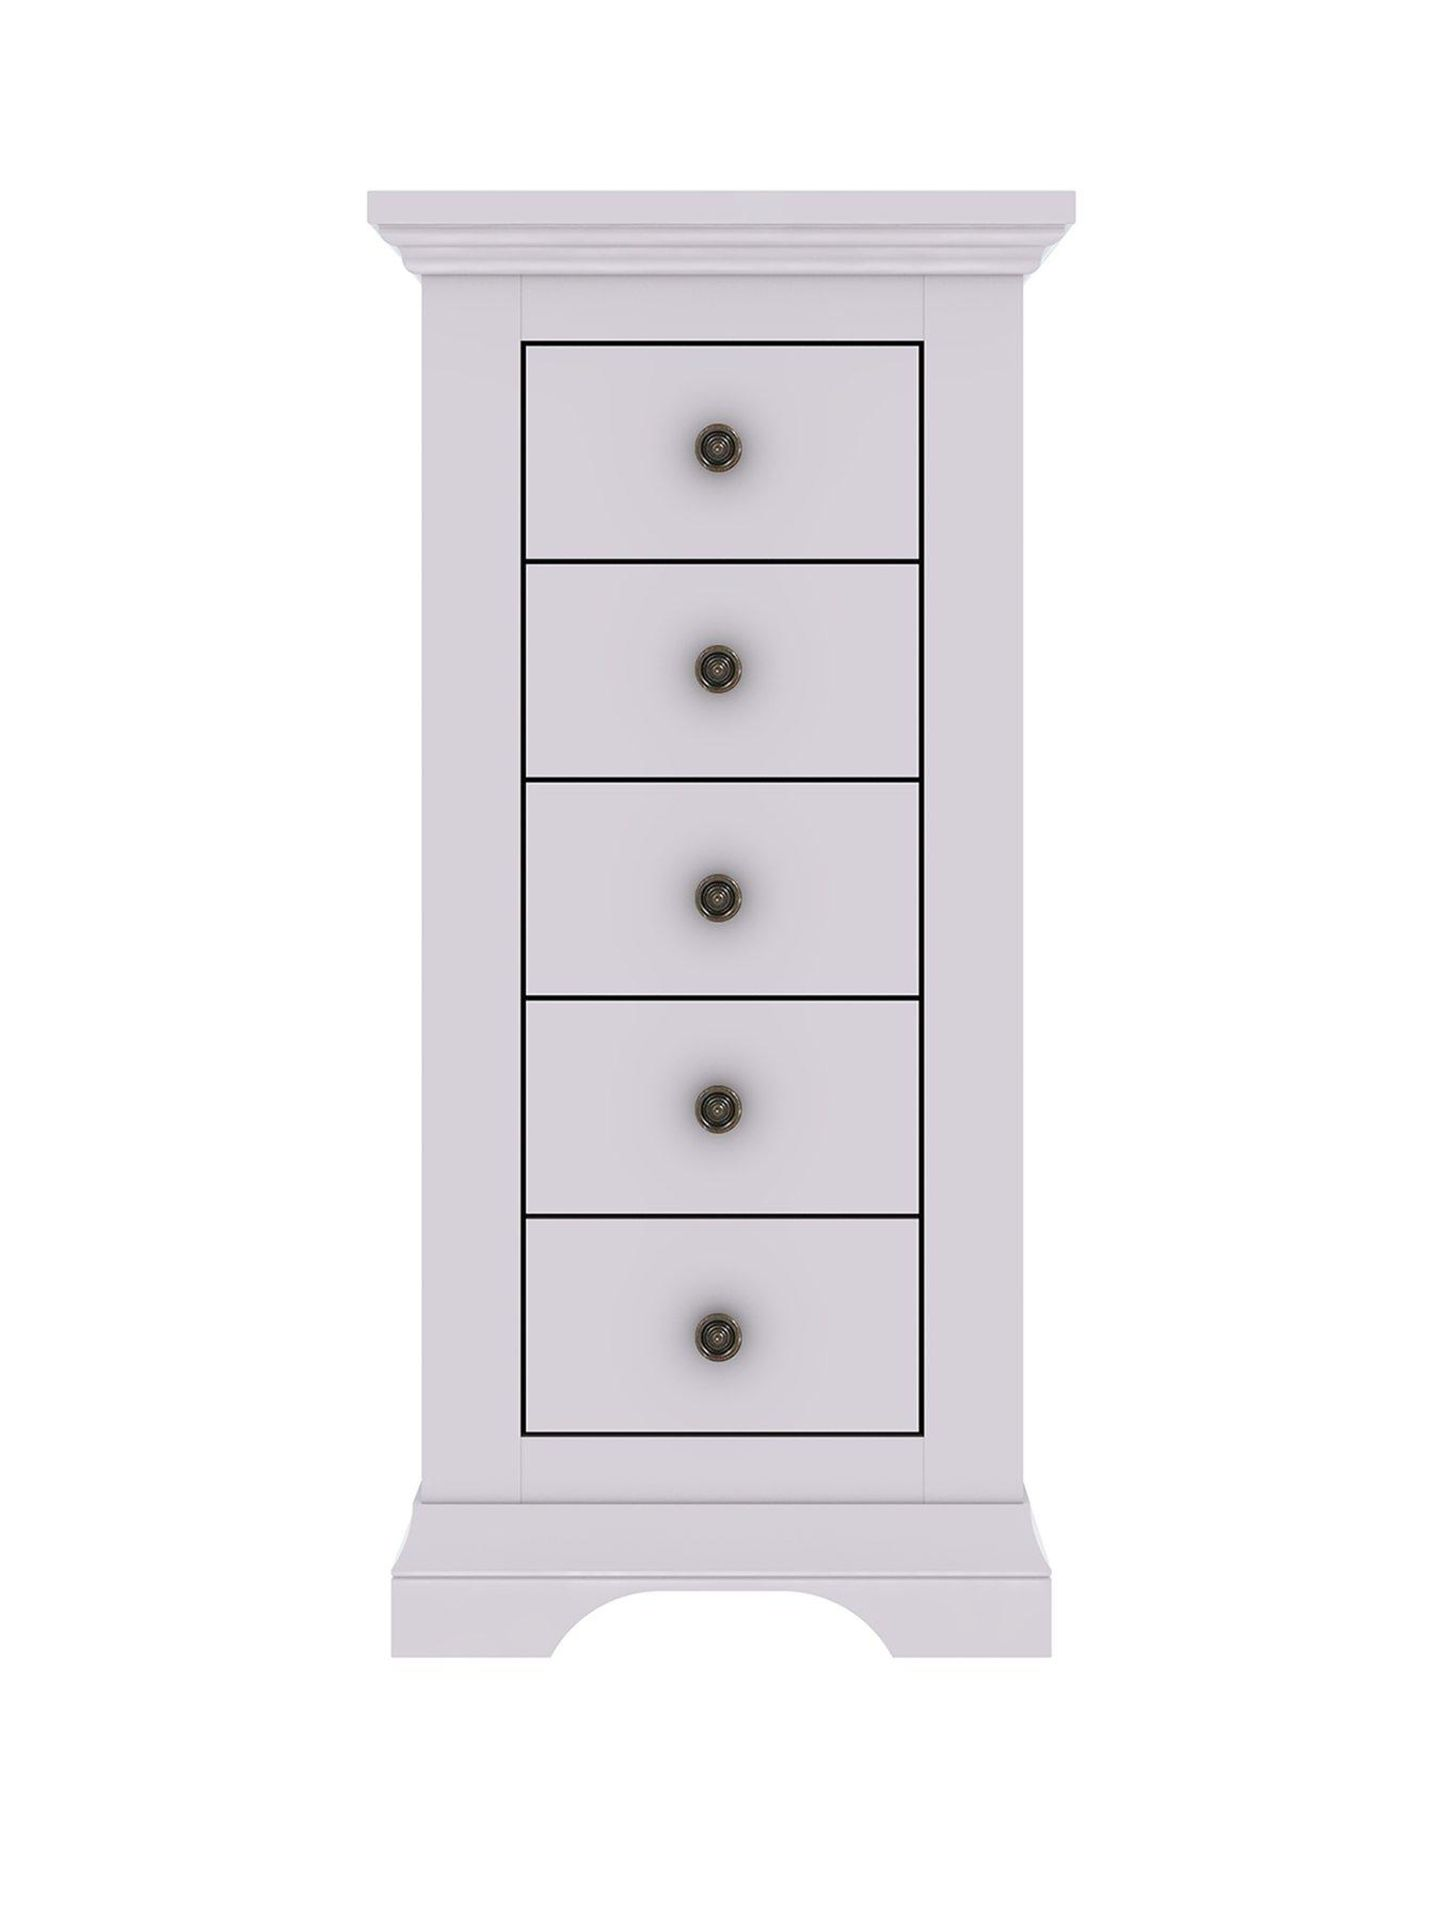 Lot 9 - Boxed Item Ideal Home Normandy 5 Drawers Solid Oak Narrow Chest [Grey] 117X53X41Cm Rrp:¬£315